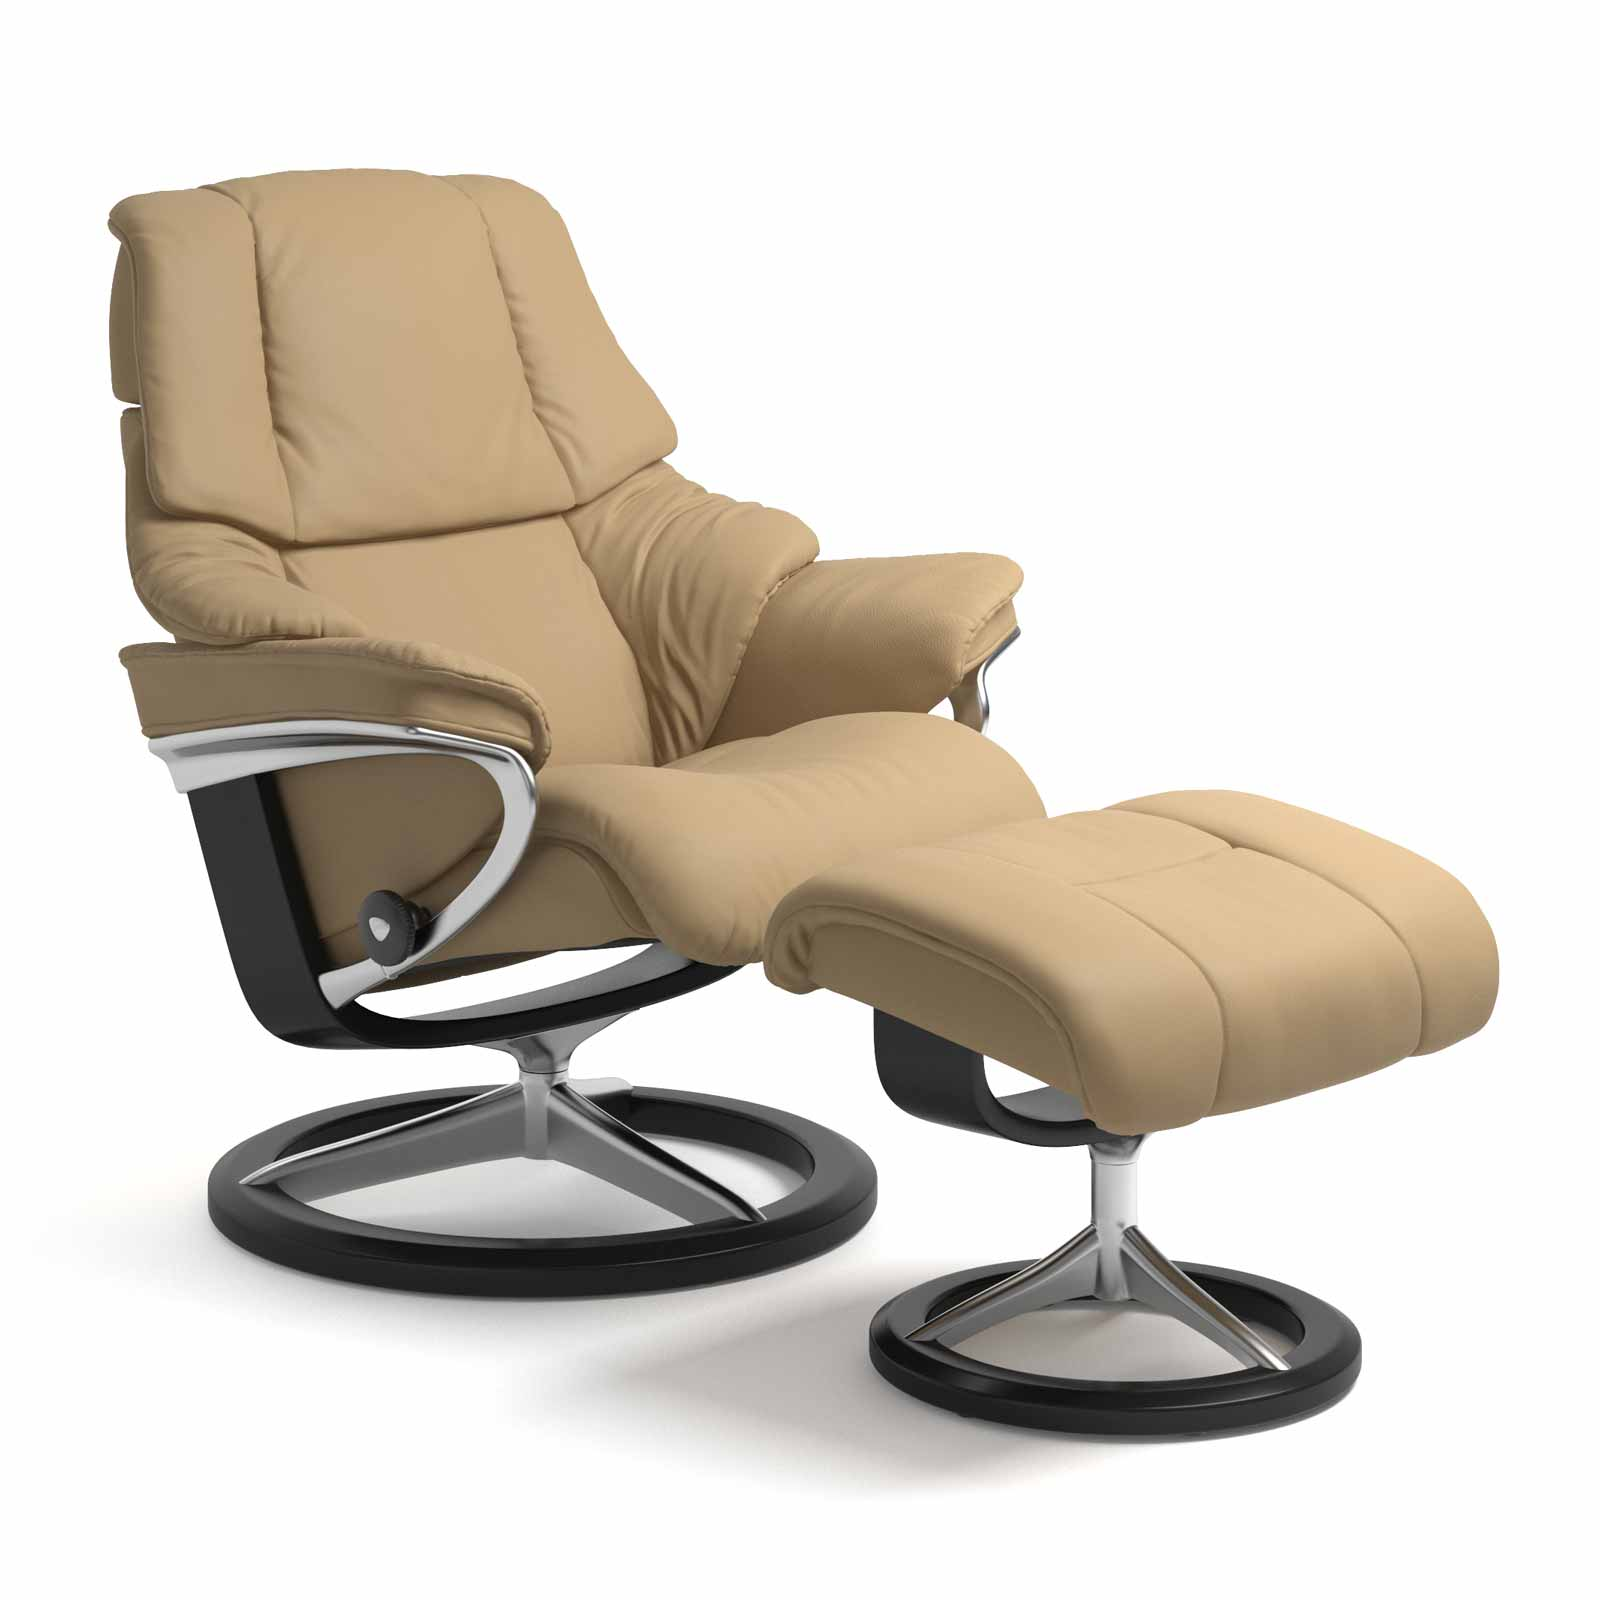 Stressless Sessel Mit Hocker Stressless Sessel Reno Signature Paloma Sand Mit Hocker